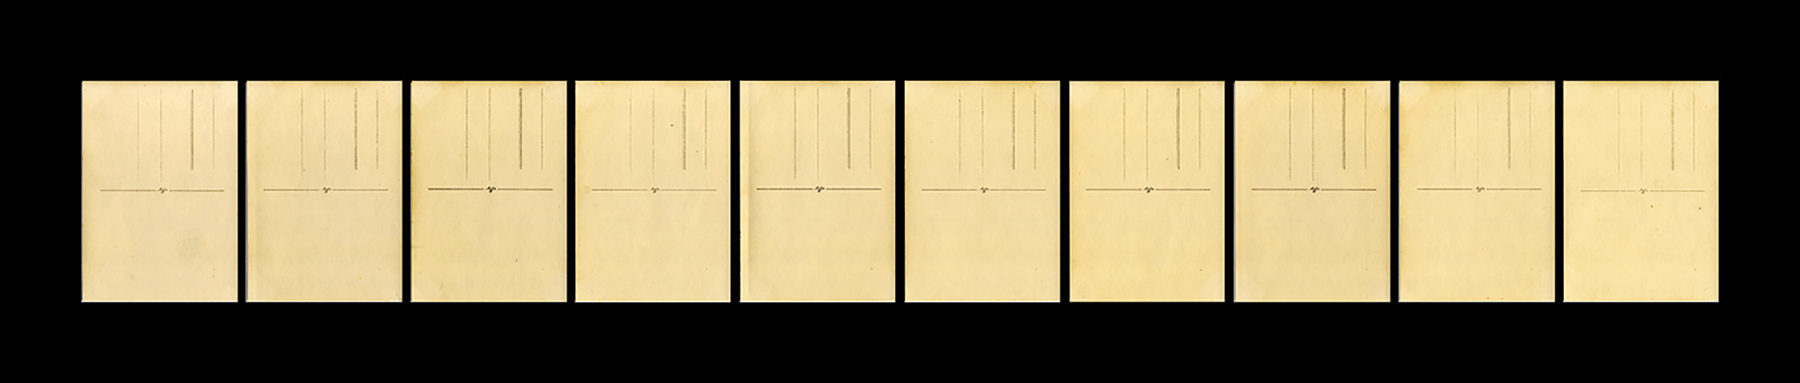 Title: Ten able-bodied adult males scanned from the rear.   Dimensions: 47 x 10 inches